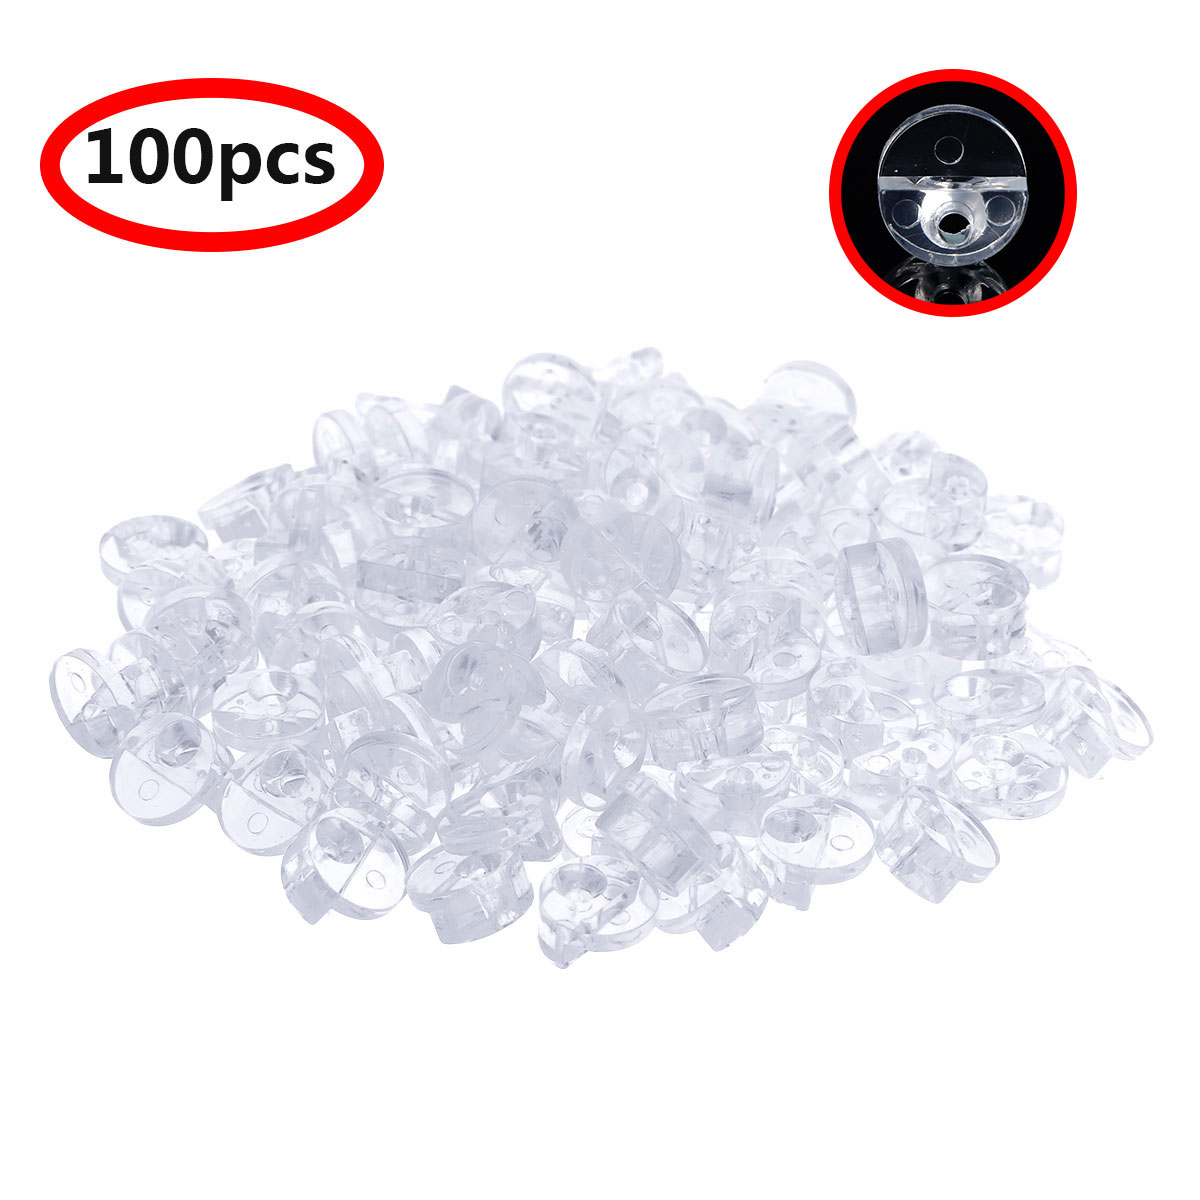 4 mm Glass Clip Glass Cabinet Clips with Screws for Fixing Glass Cabinet Doors AIEVE 100 Pack Glass Retainer Clips Kit